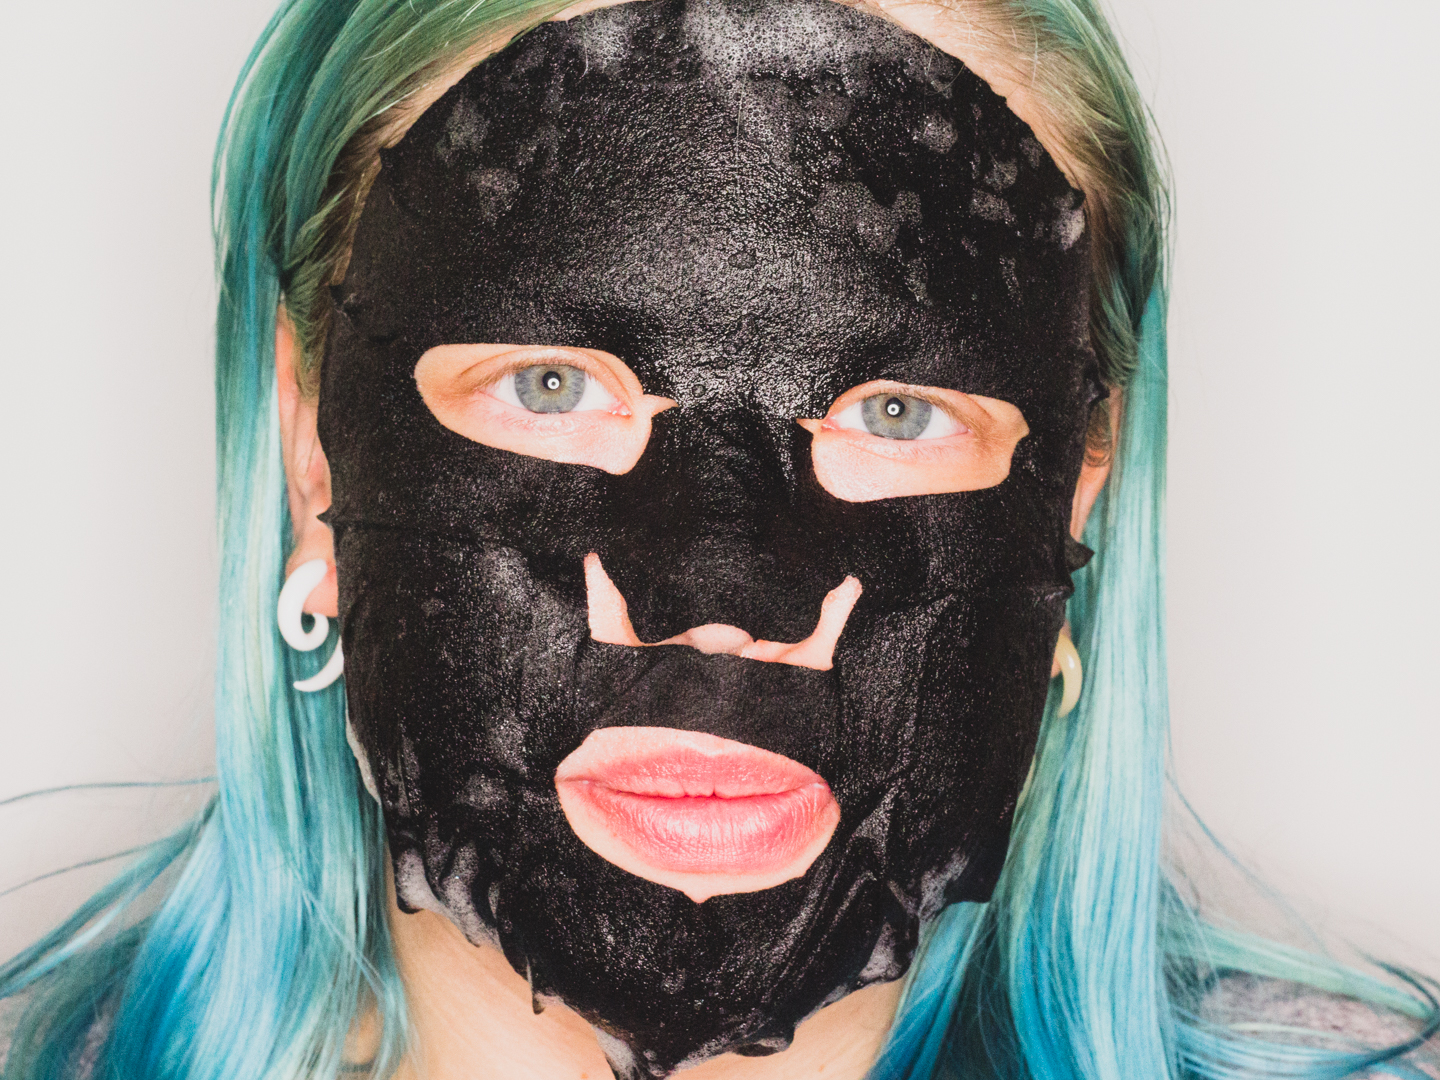 Het Bubble Bubble Sheet Mask aangebracht